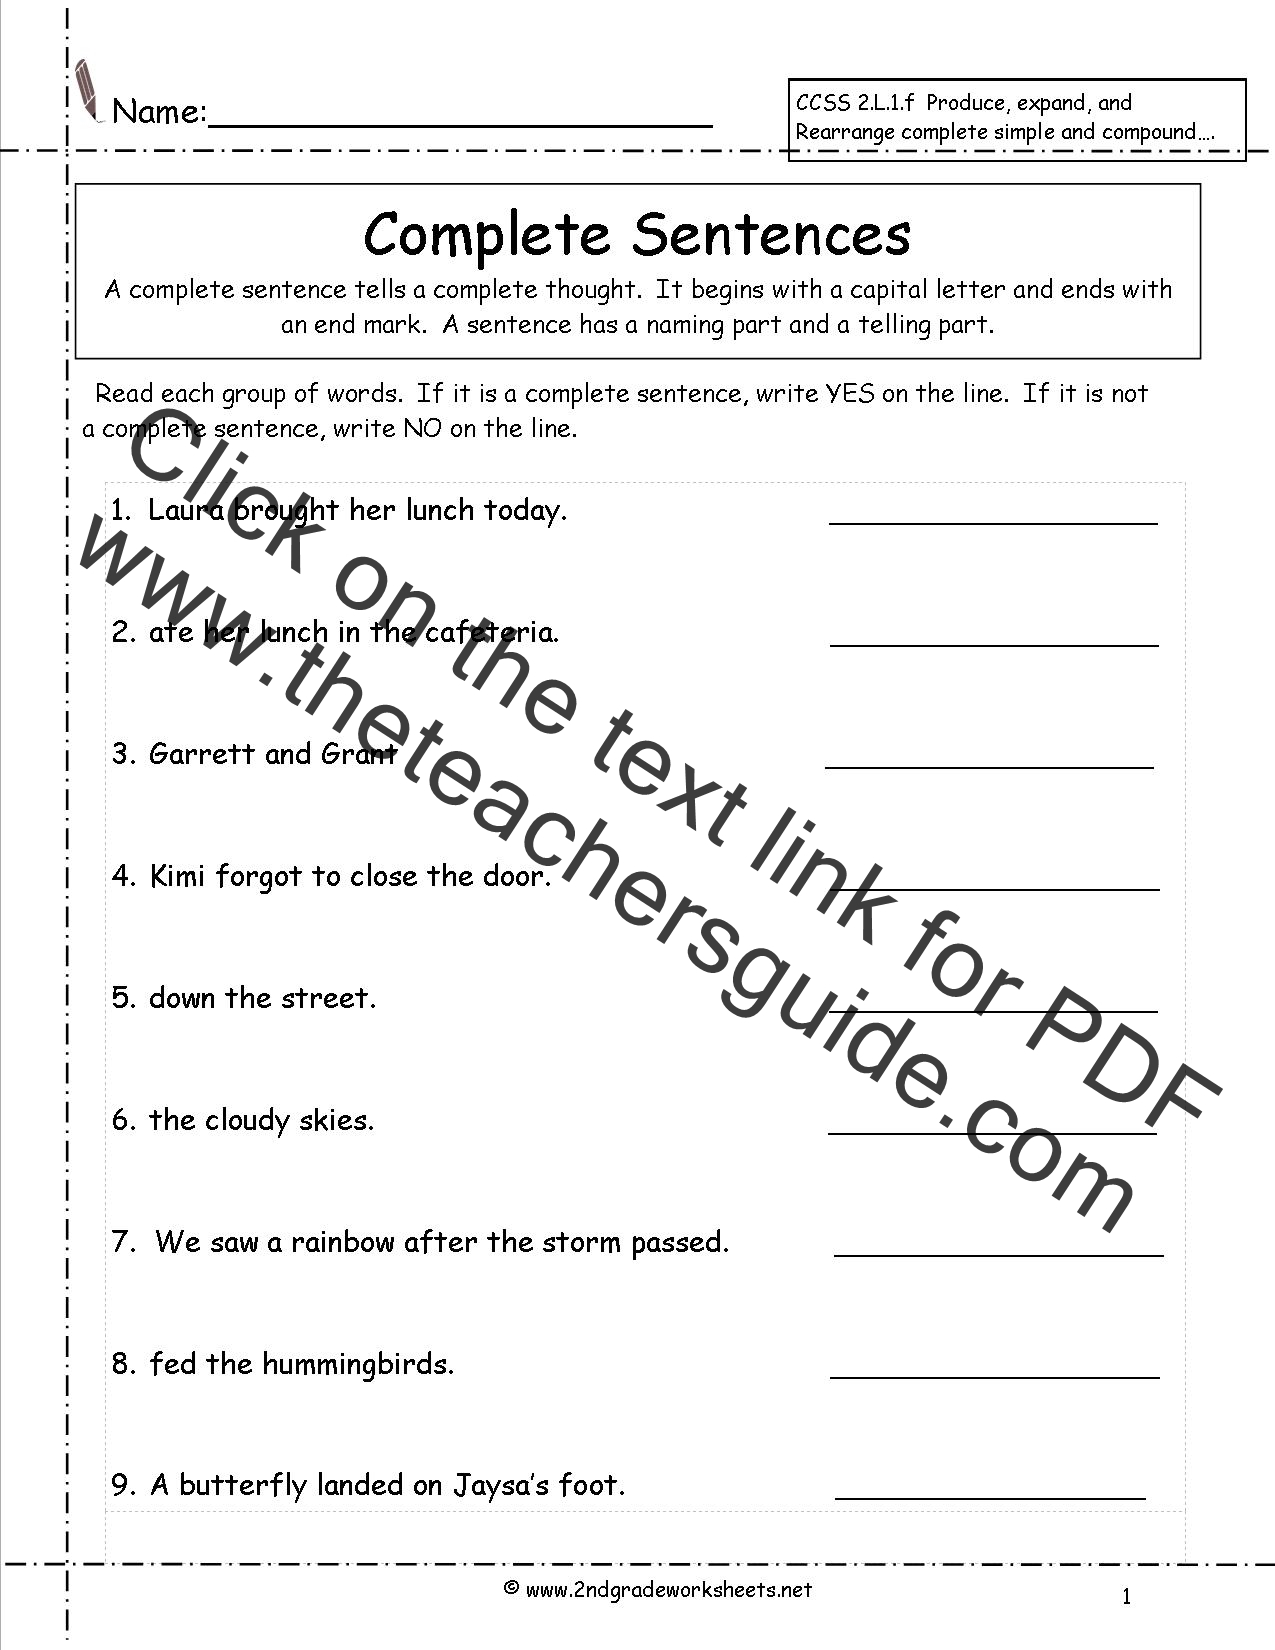 Free Worksheet Correcting Sentences Worksheets second grade sentences worksheets ccss 2 l 1 f complete worksheets